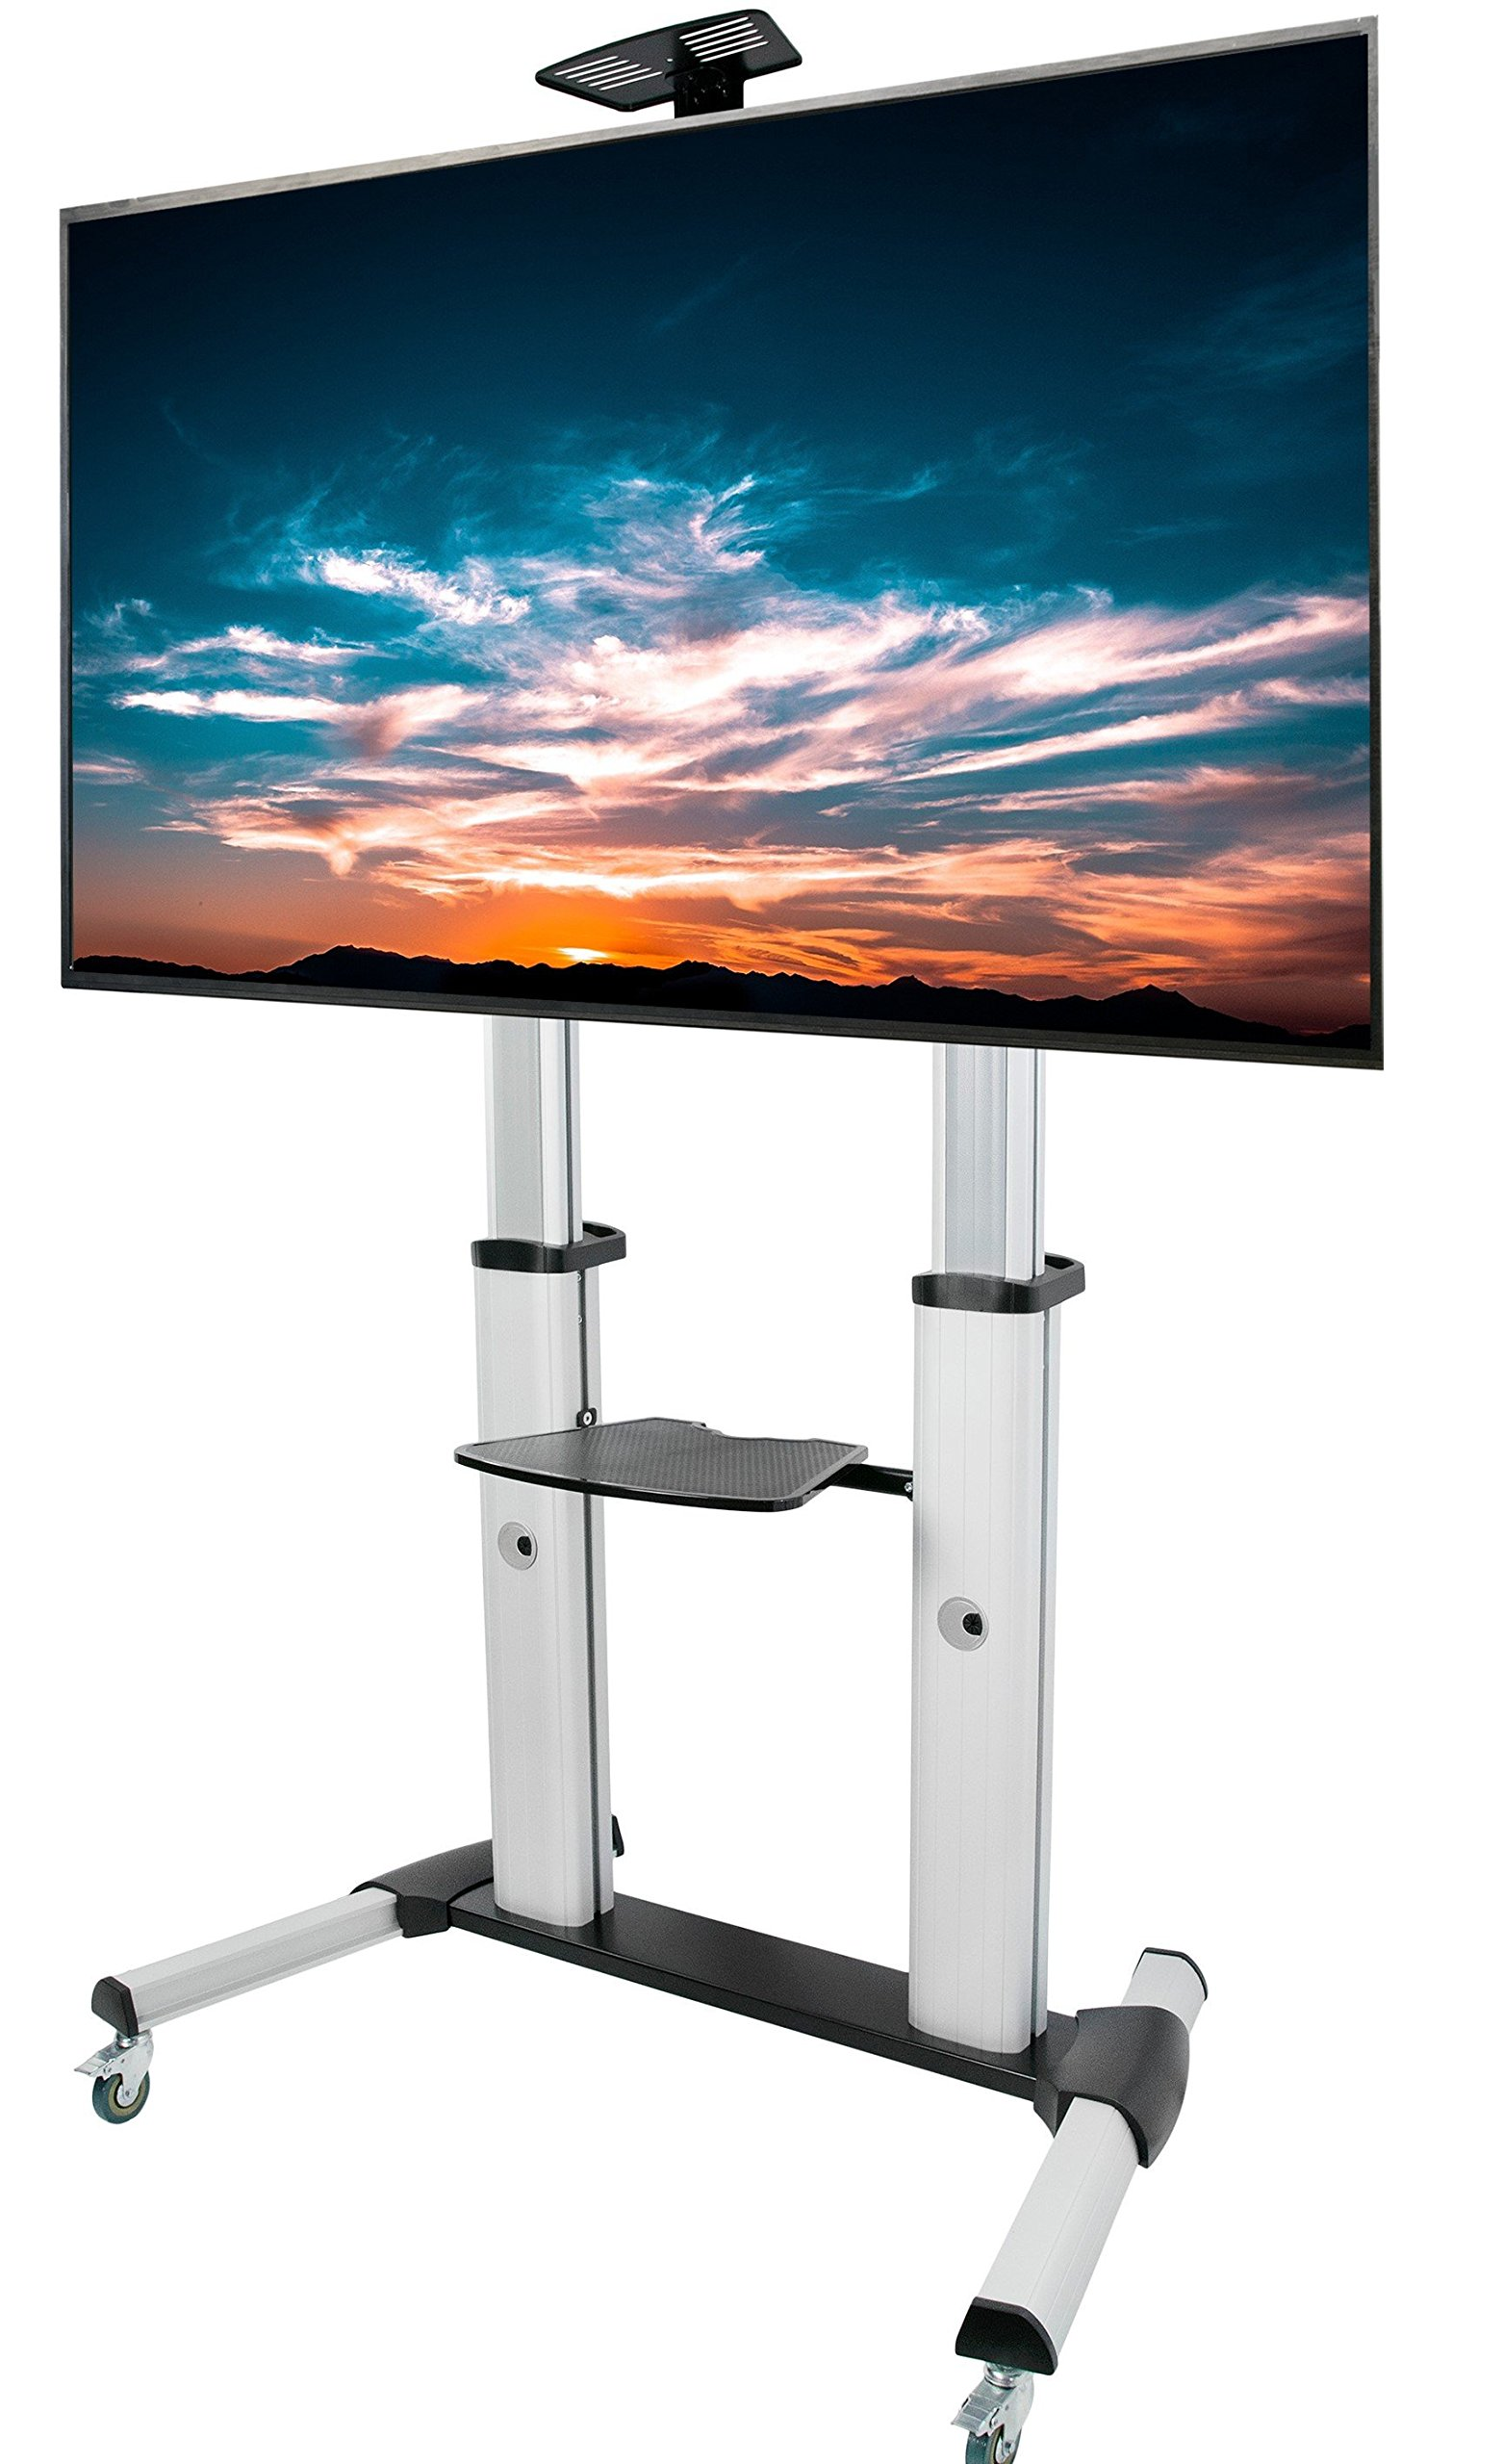 VIVO Ultra Heavy Duty Mobile 60 to 100 inch TV Stand for Flat Screens | Adjustable, Rolling TV Cart Mount with Wheels (STAND-TV22S) by VIVO